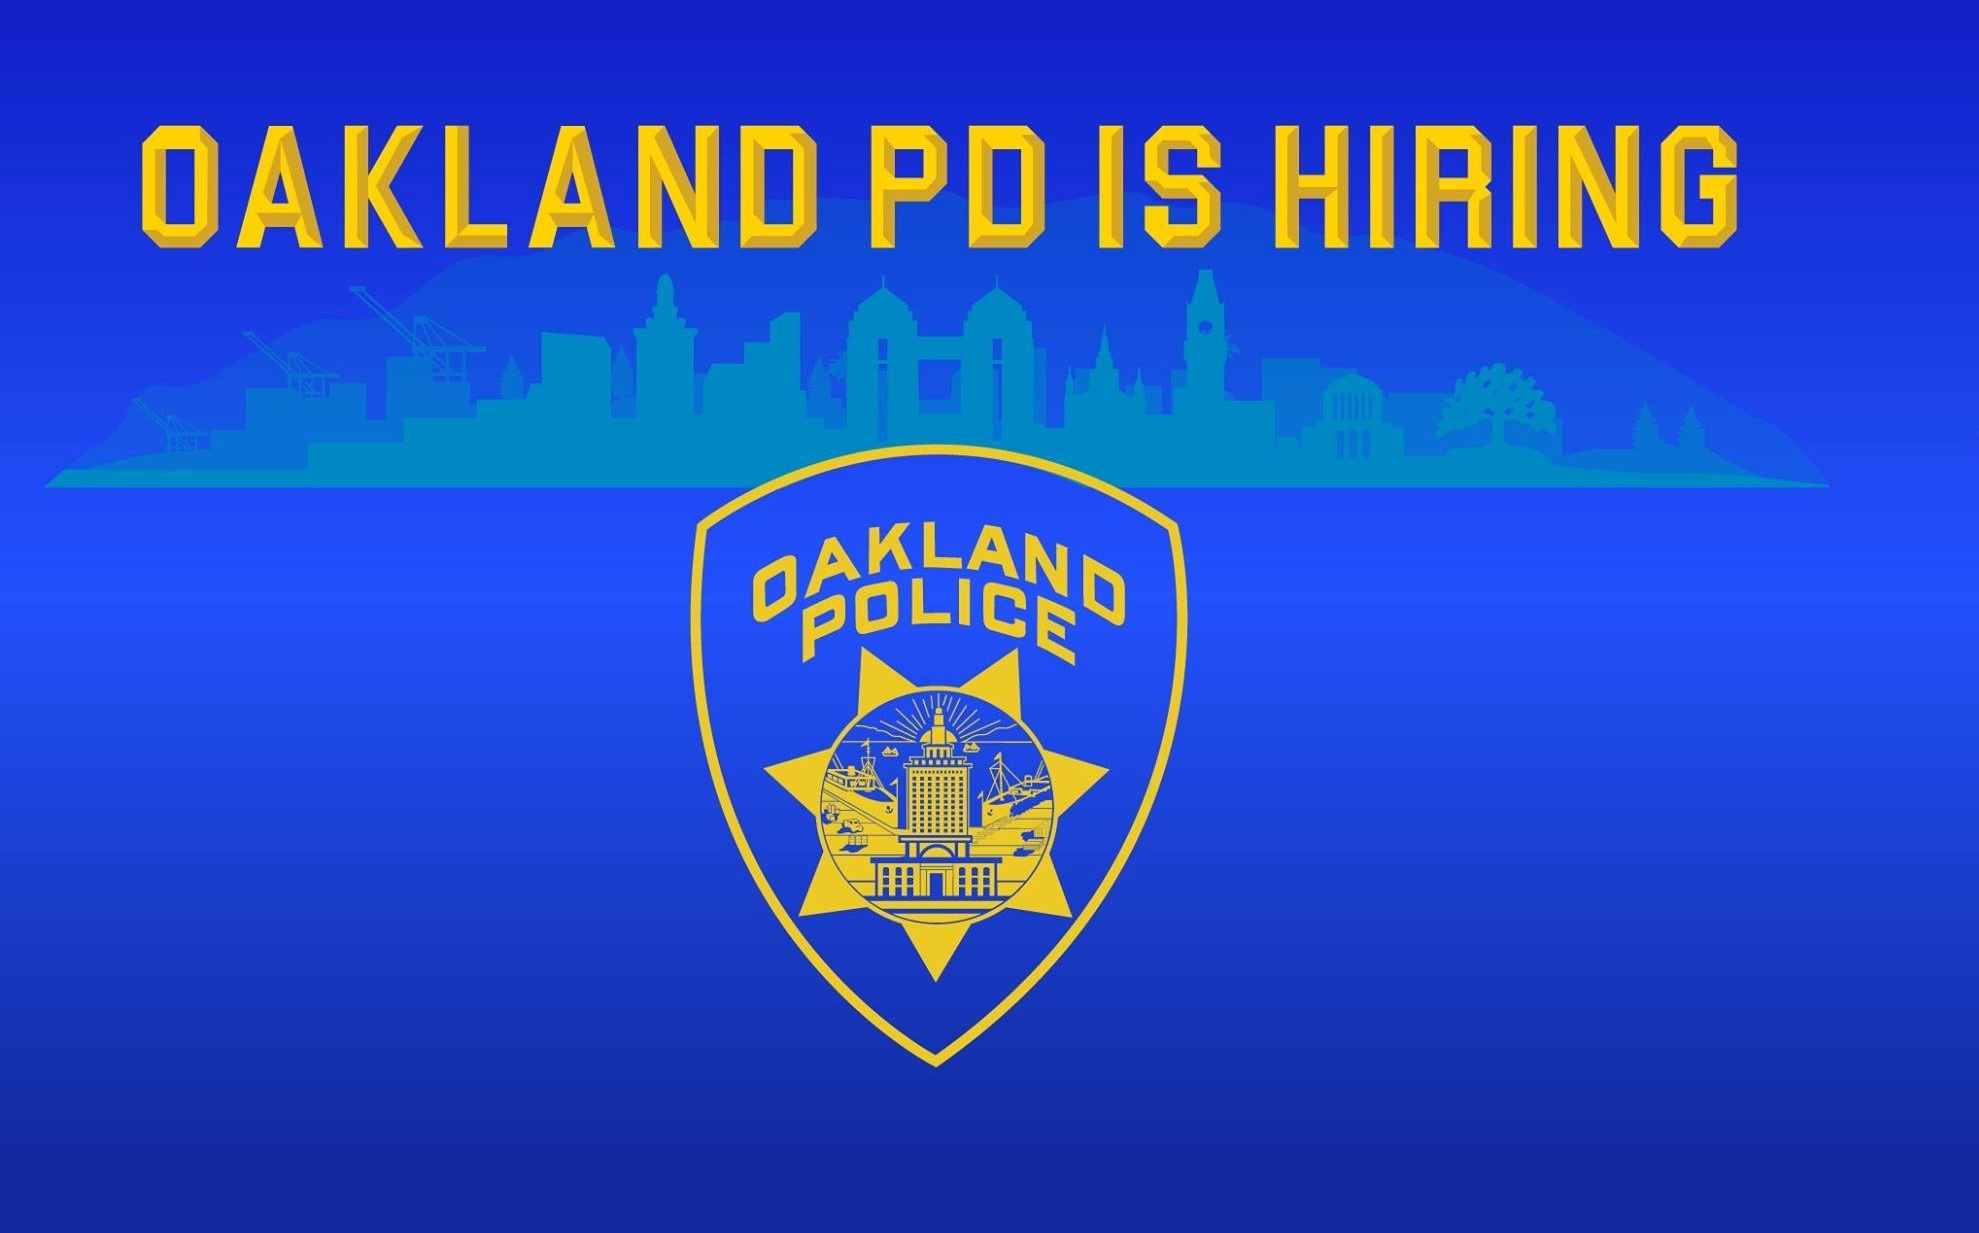 OPD is hiring.